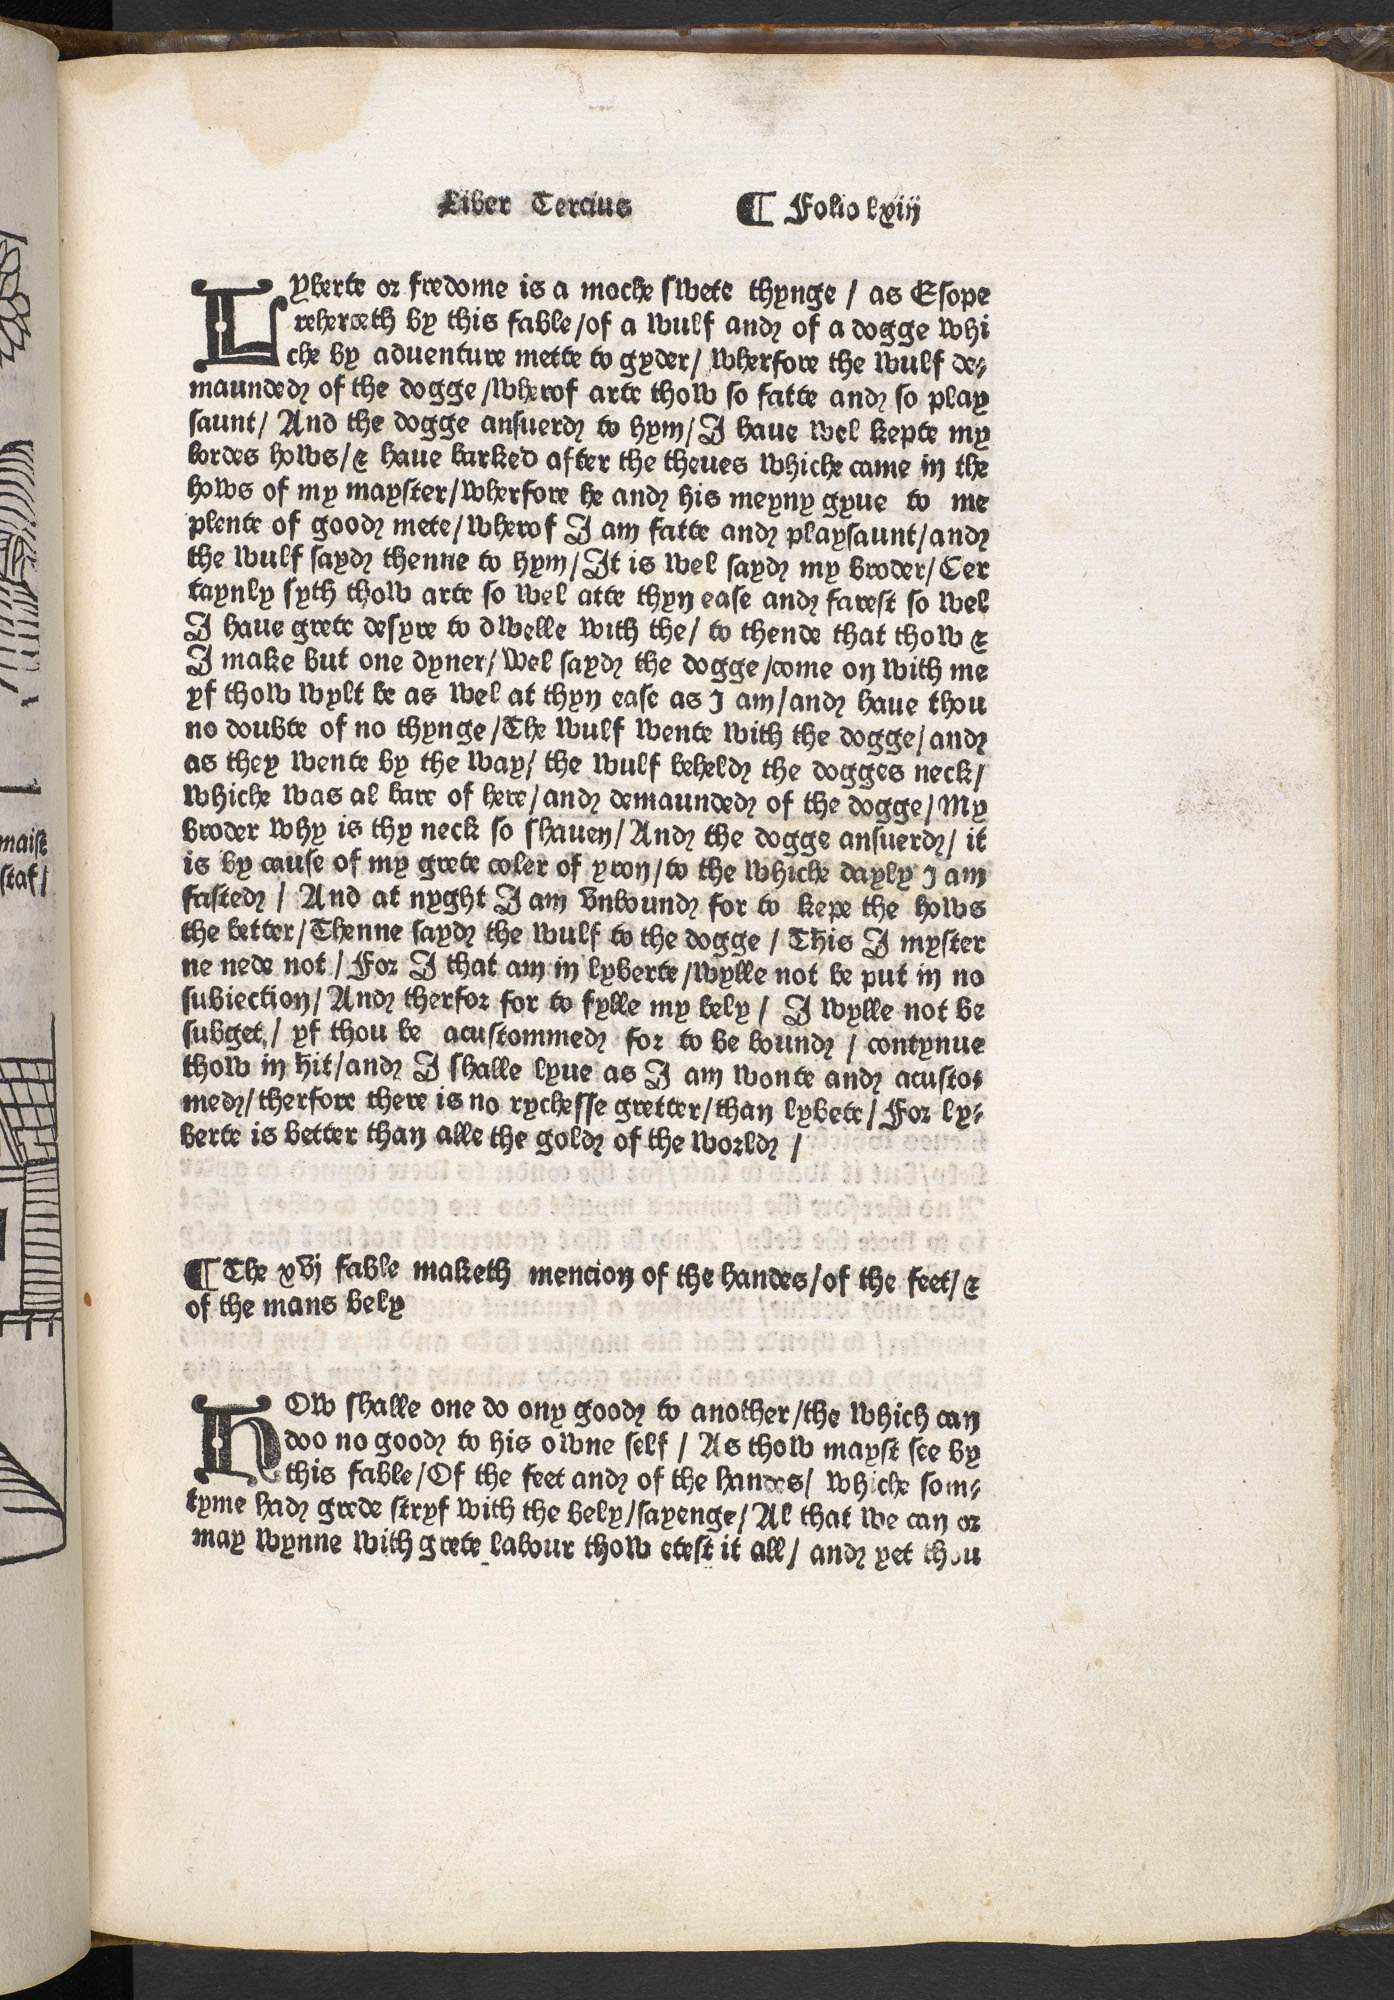 Aesop's Fables printed by William Caxton, 1484